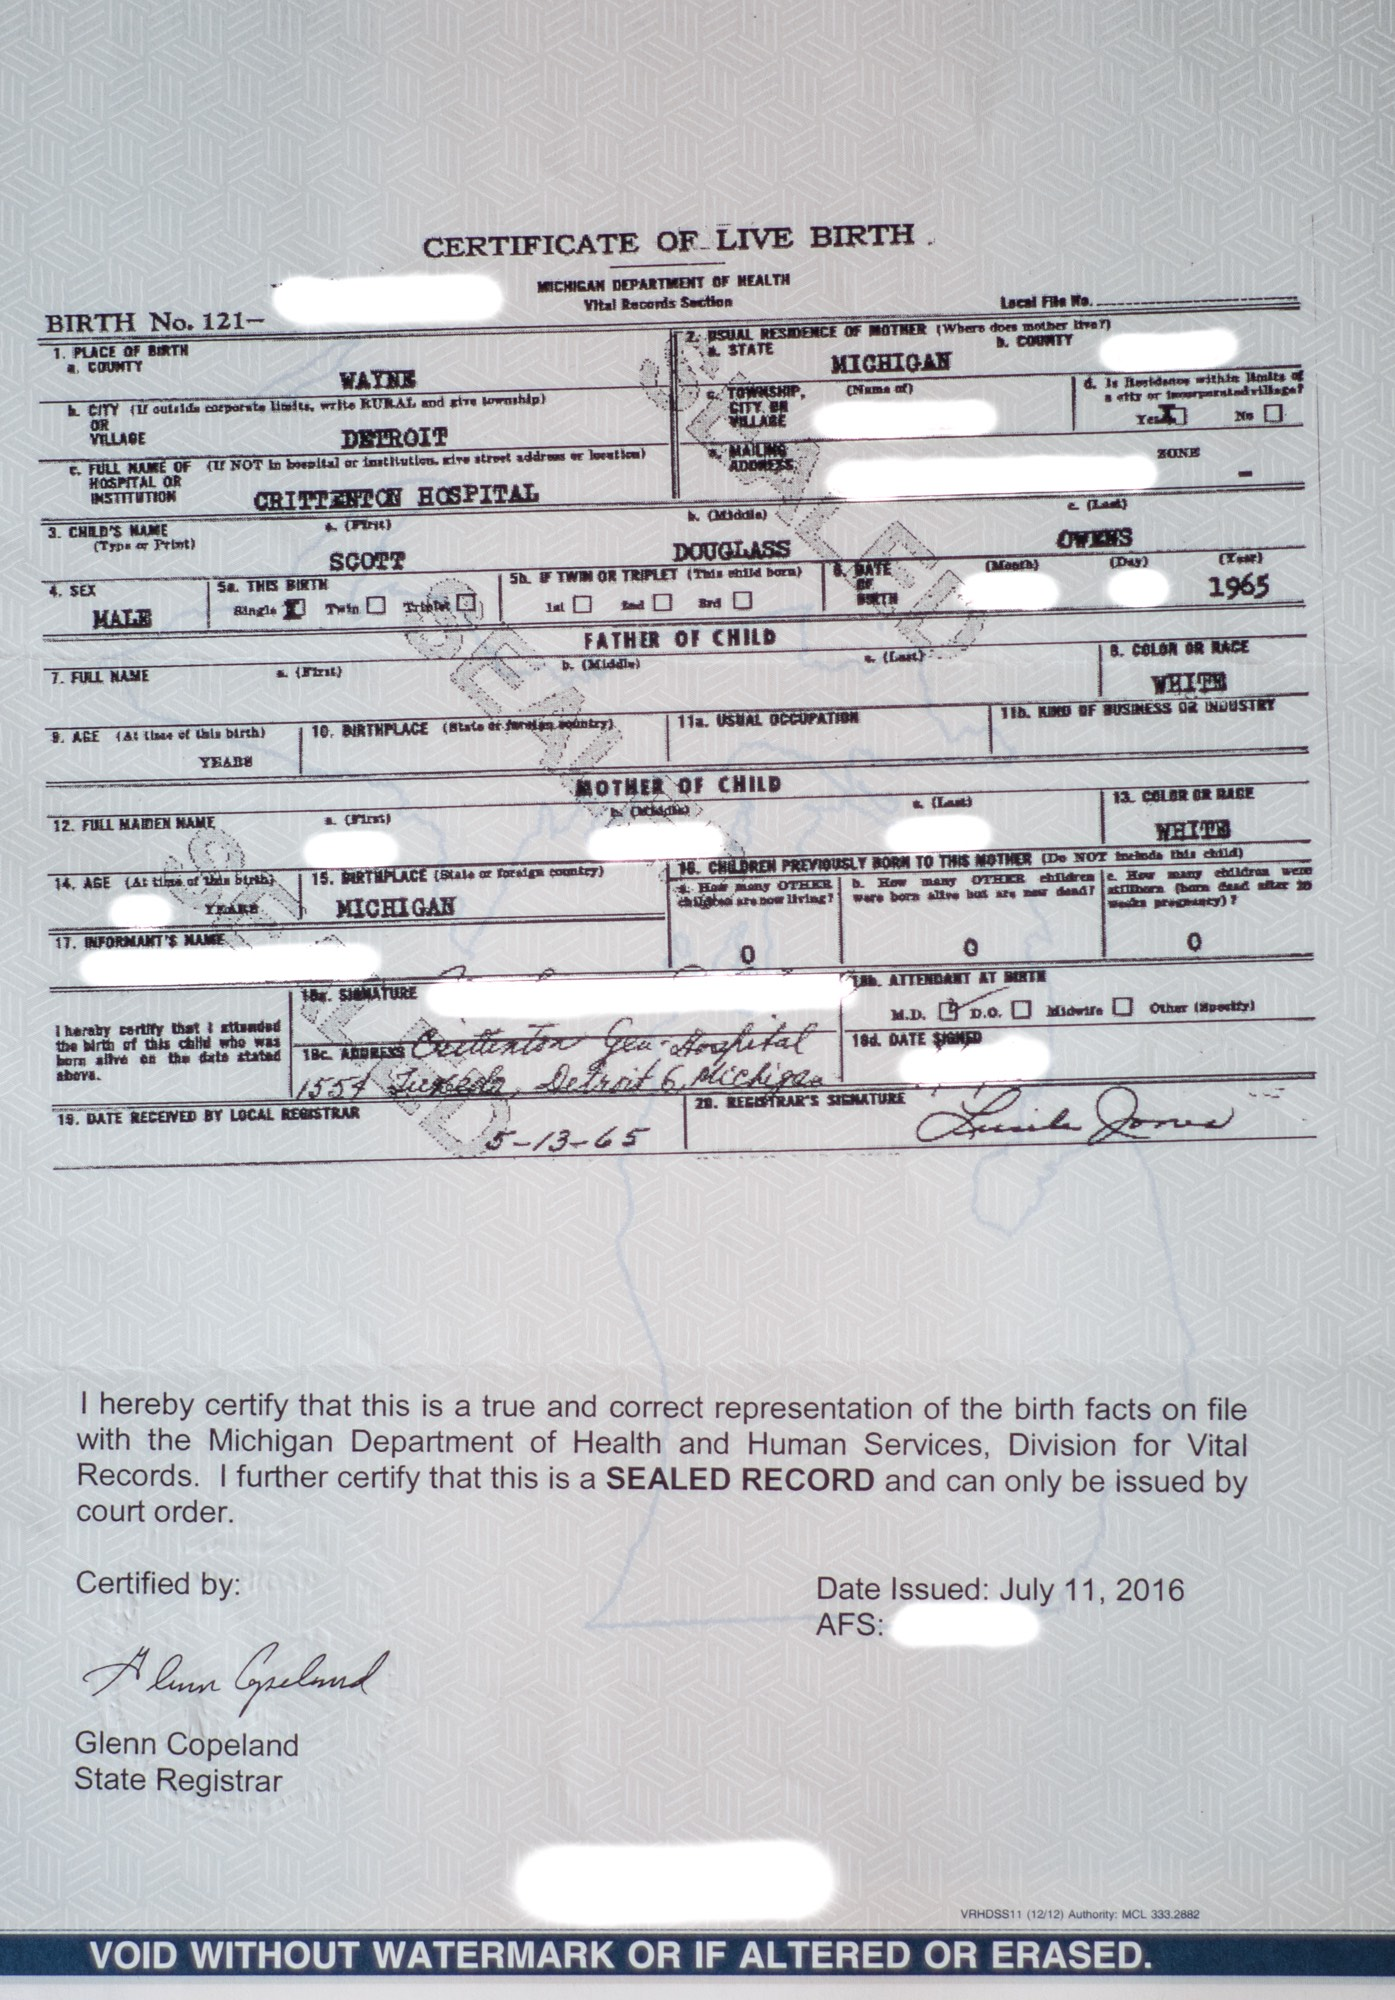 Faqs for court order requests in michigan for original birth a copy of rudy owens original birth certificate with some information intentionally whited out by the author aiddatafo Image collections